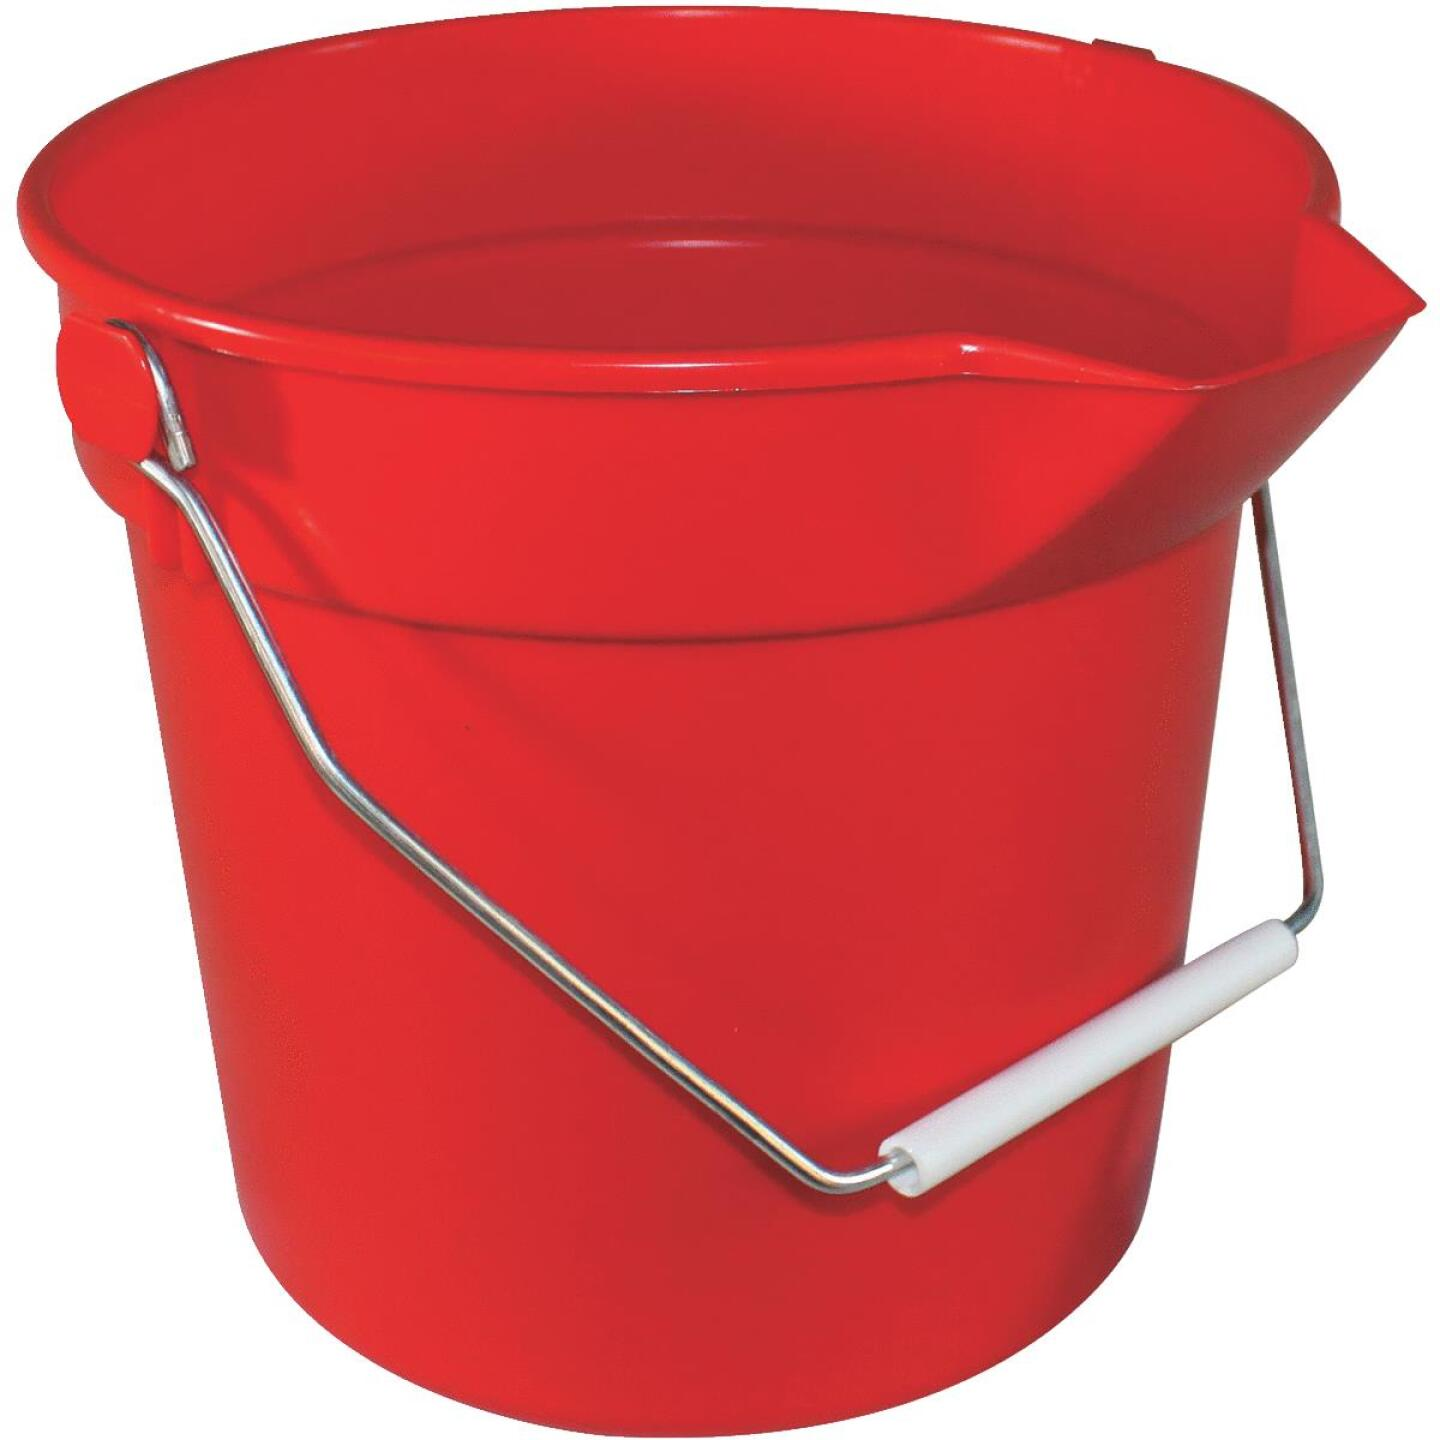 Impact 10 Qt. Red Heavy-Duty Bucket Image 1